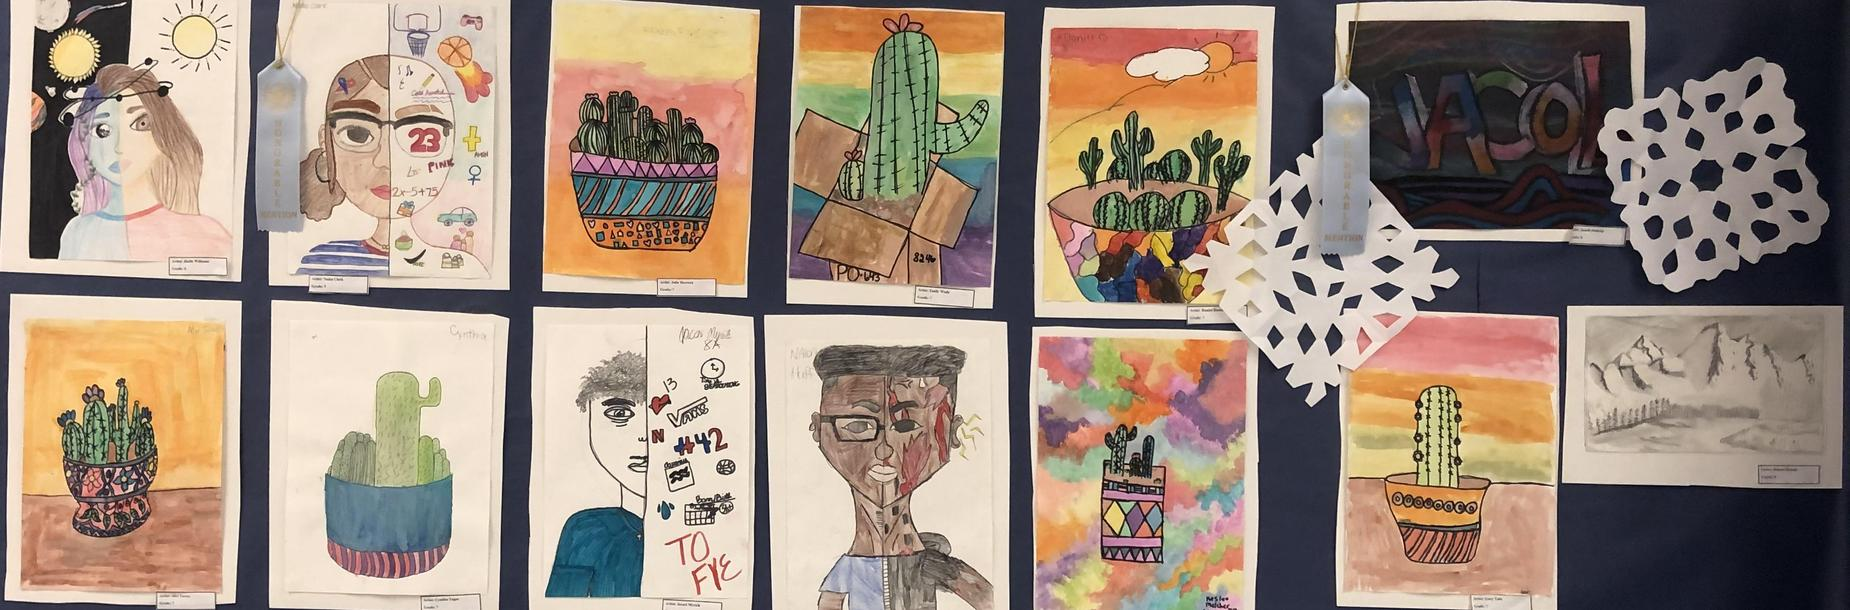 Art on Display during Winter Fine Arts Program